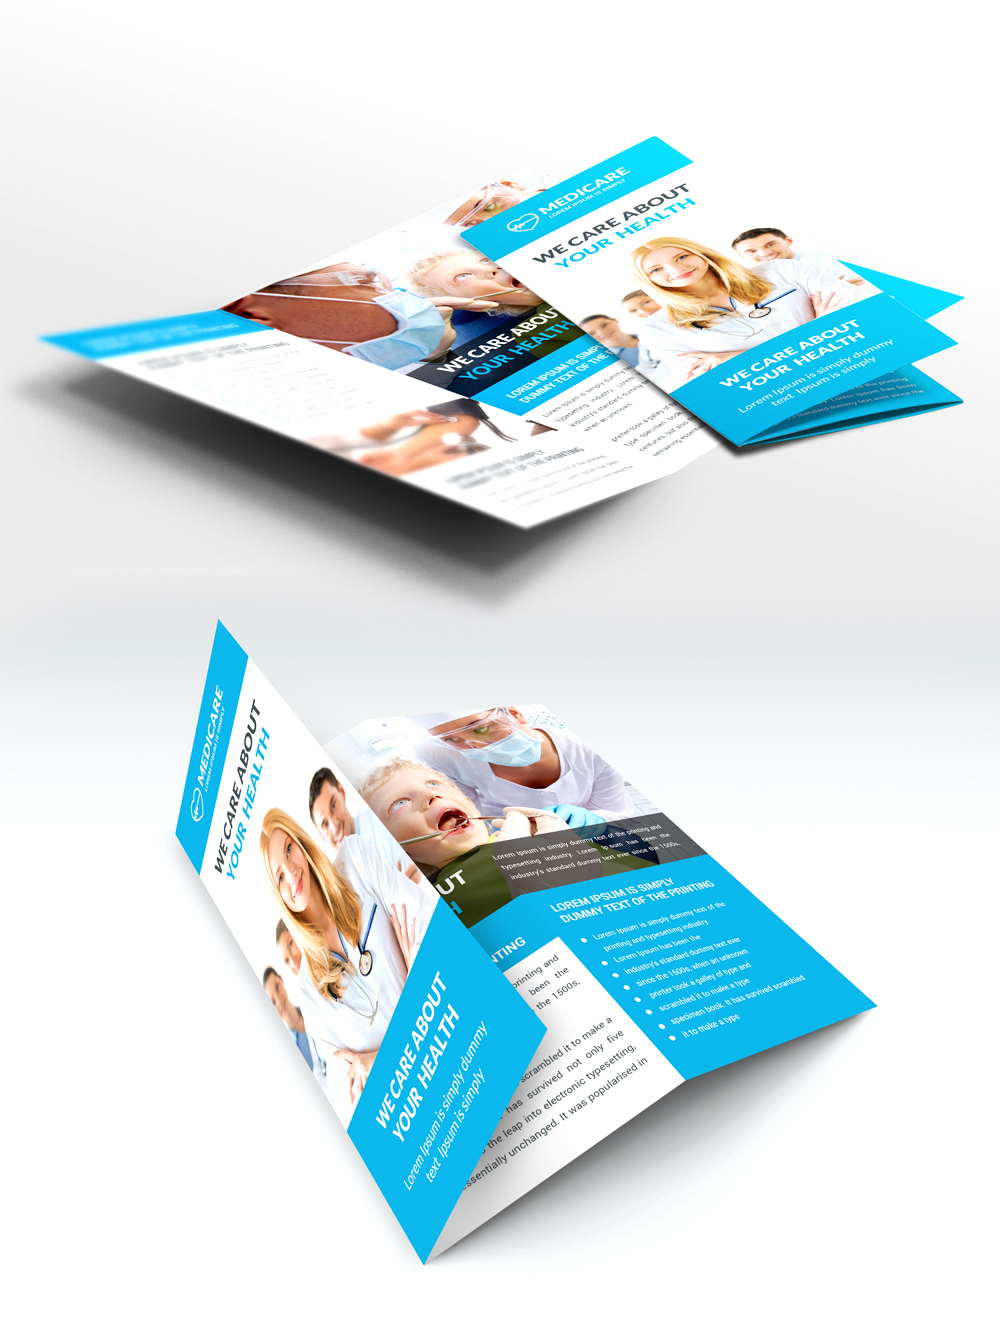 Medical Care And Hospital Trifold Brochure Template Free PSD - Free medical brochure templates